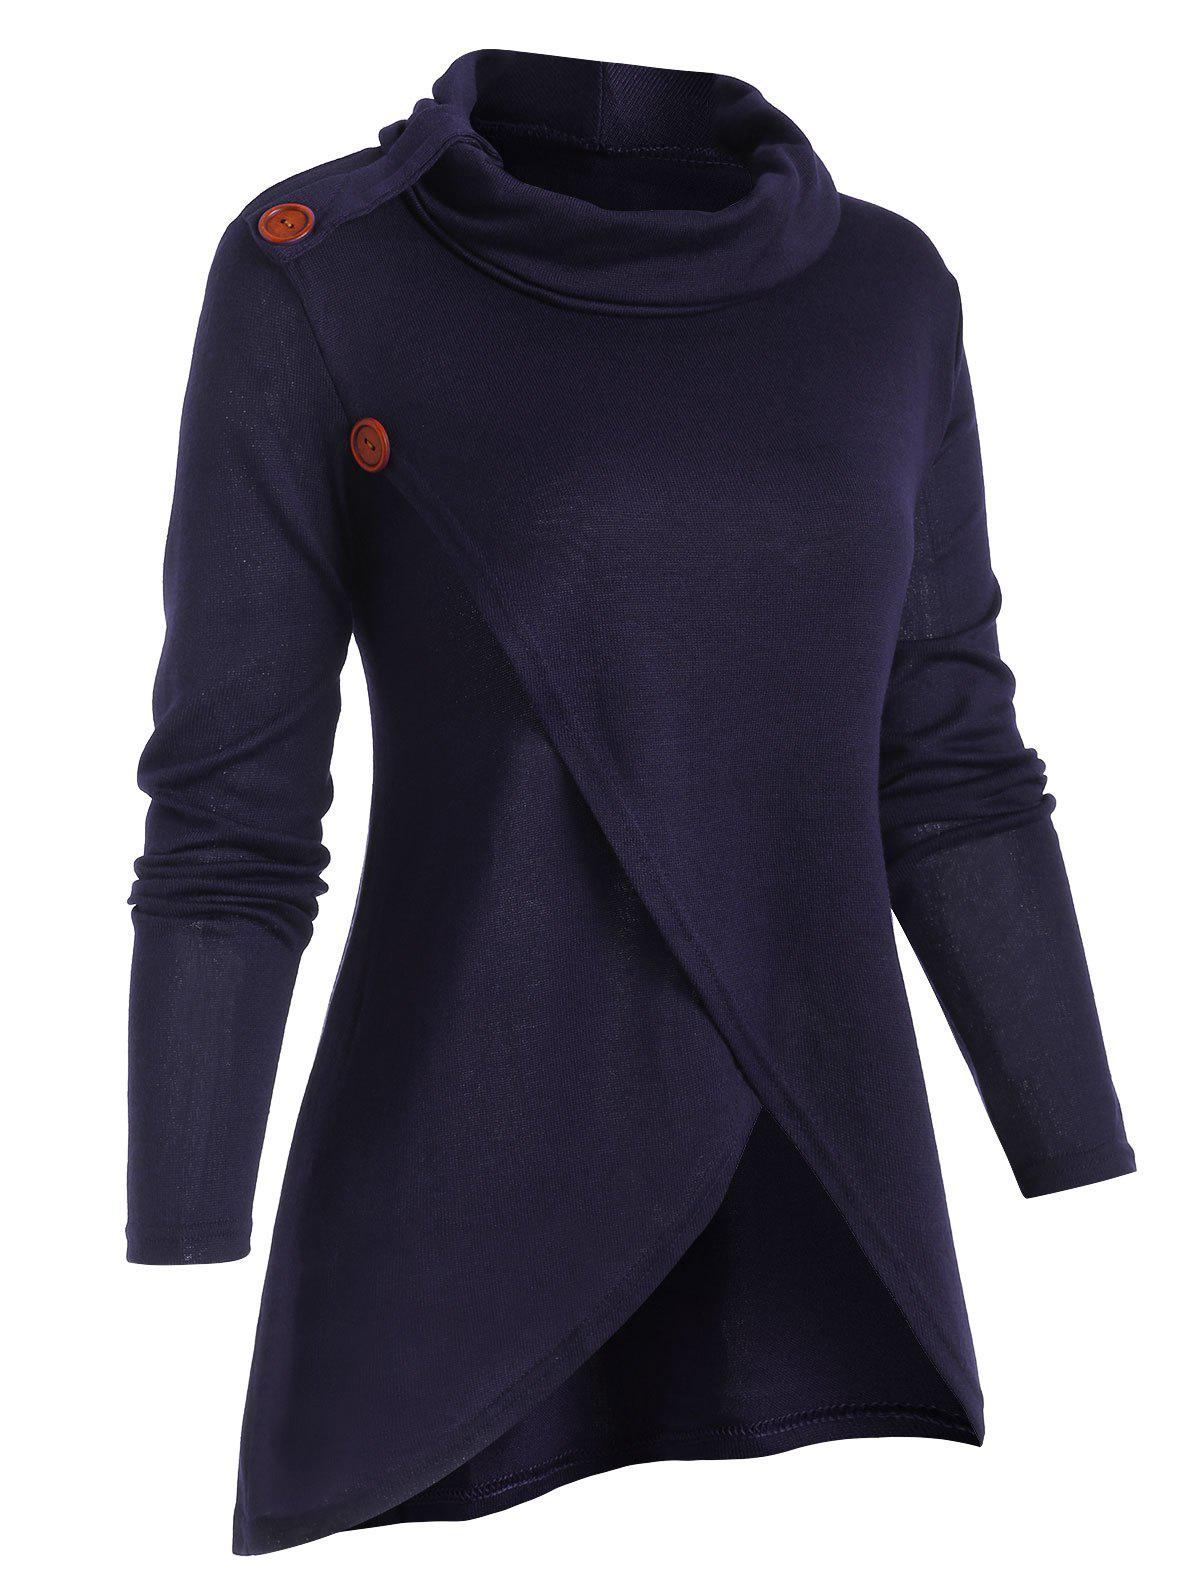 New Overlap Front Cowl Neck Solid Knitwear